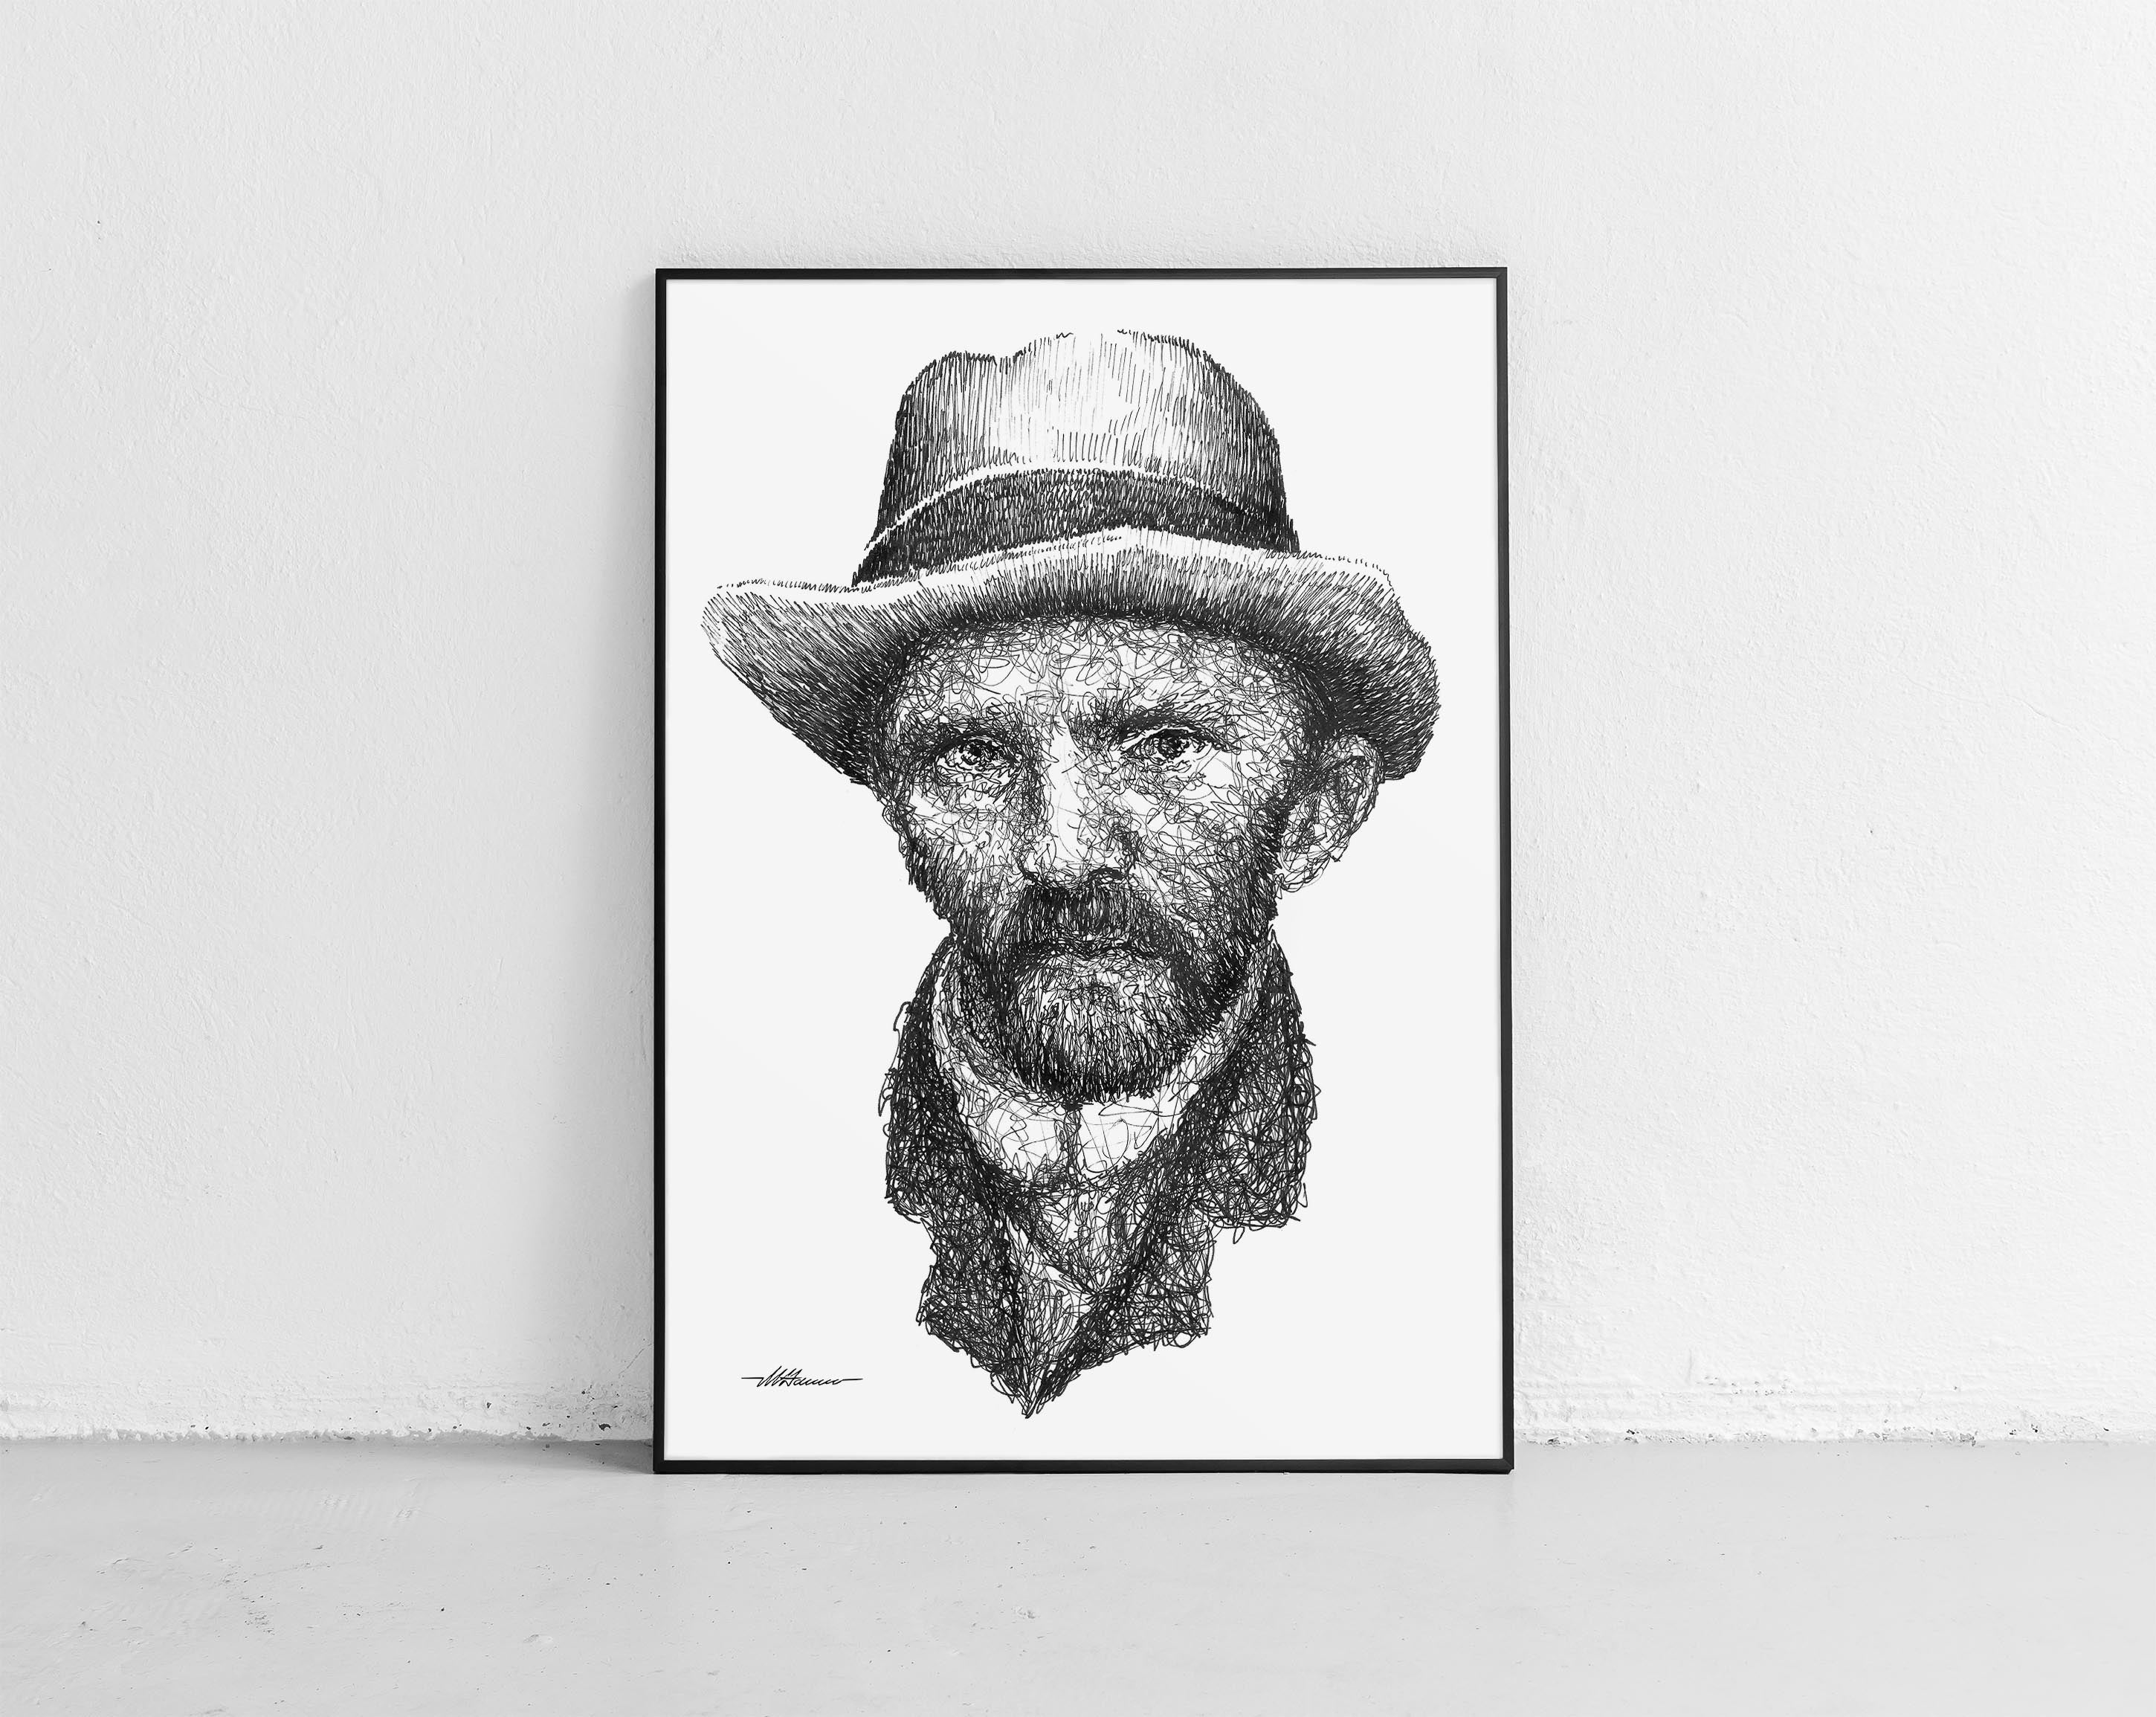 Scribbled Vincent Van Gogh with hat